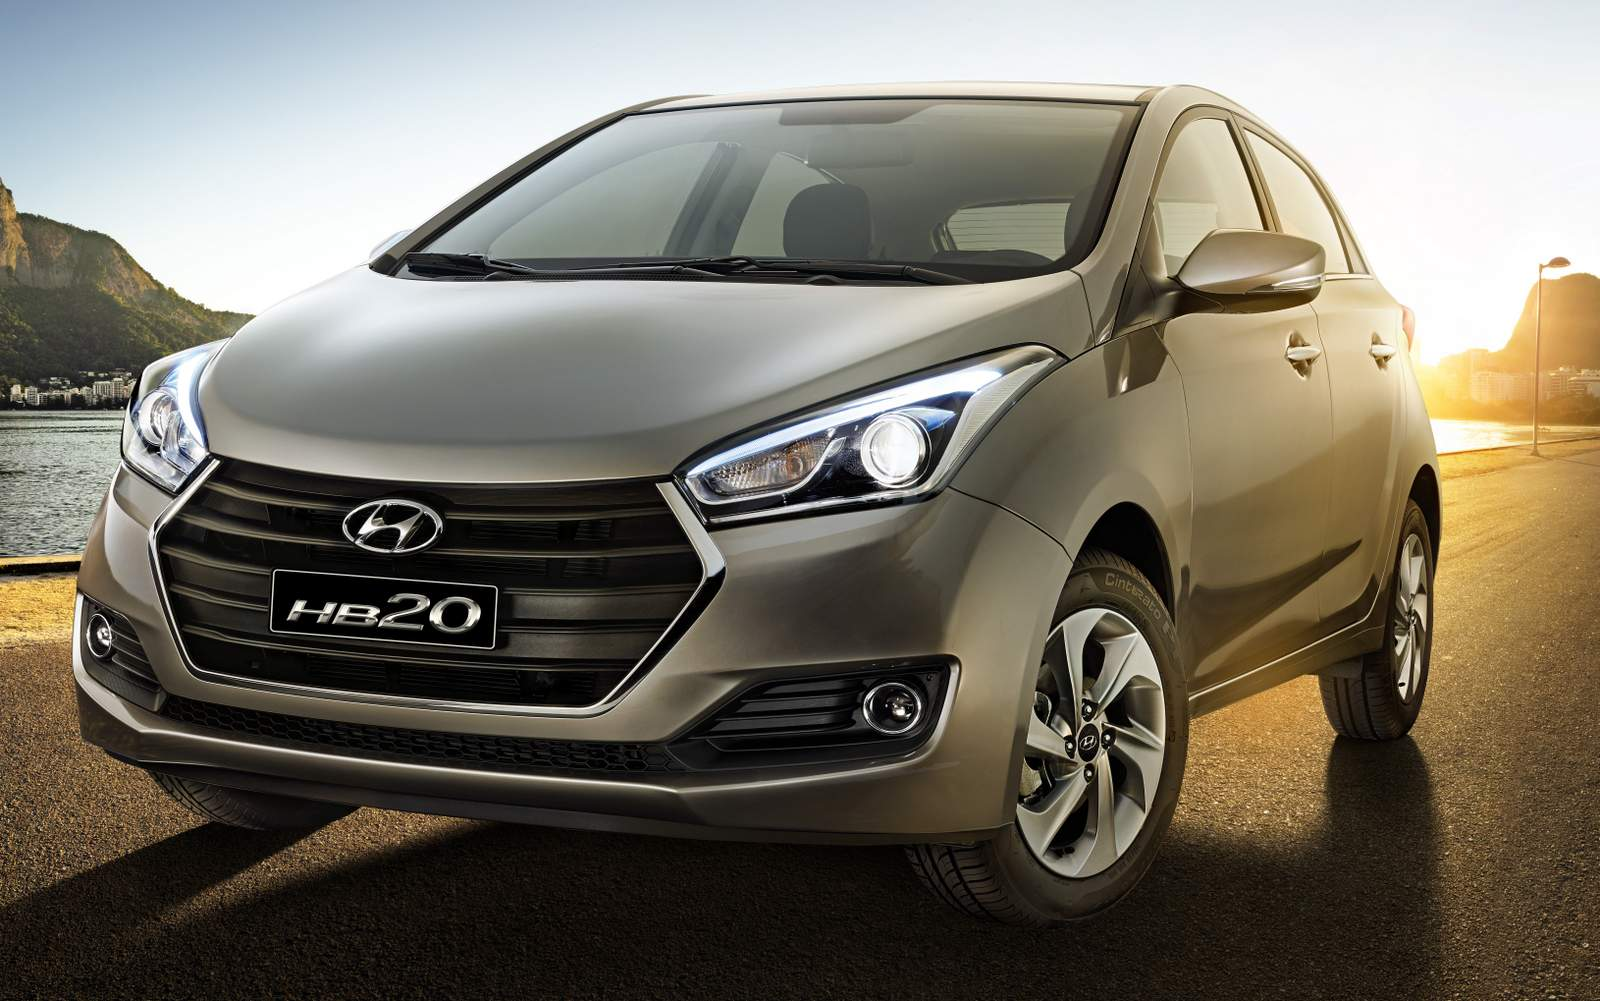 Updated 2016 Hyundai HB20 Launched in Brazil, 1-Liter Turbo Flex Announced - autoevolution